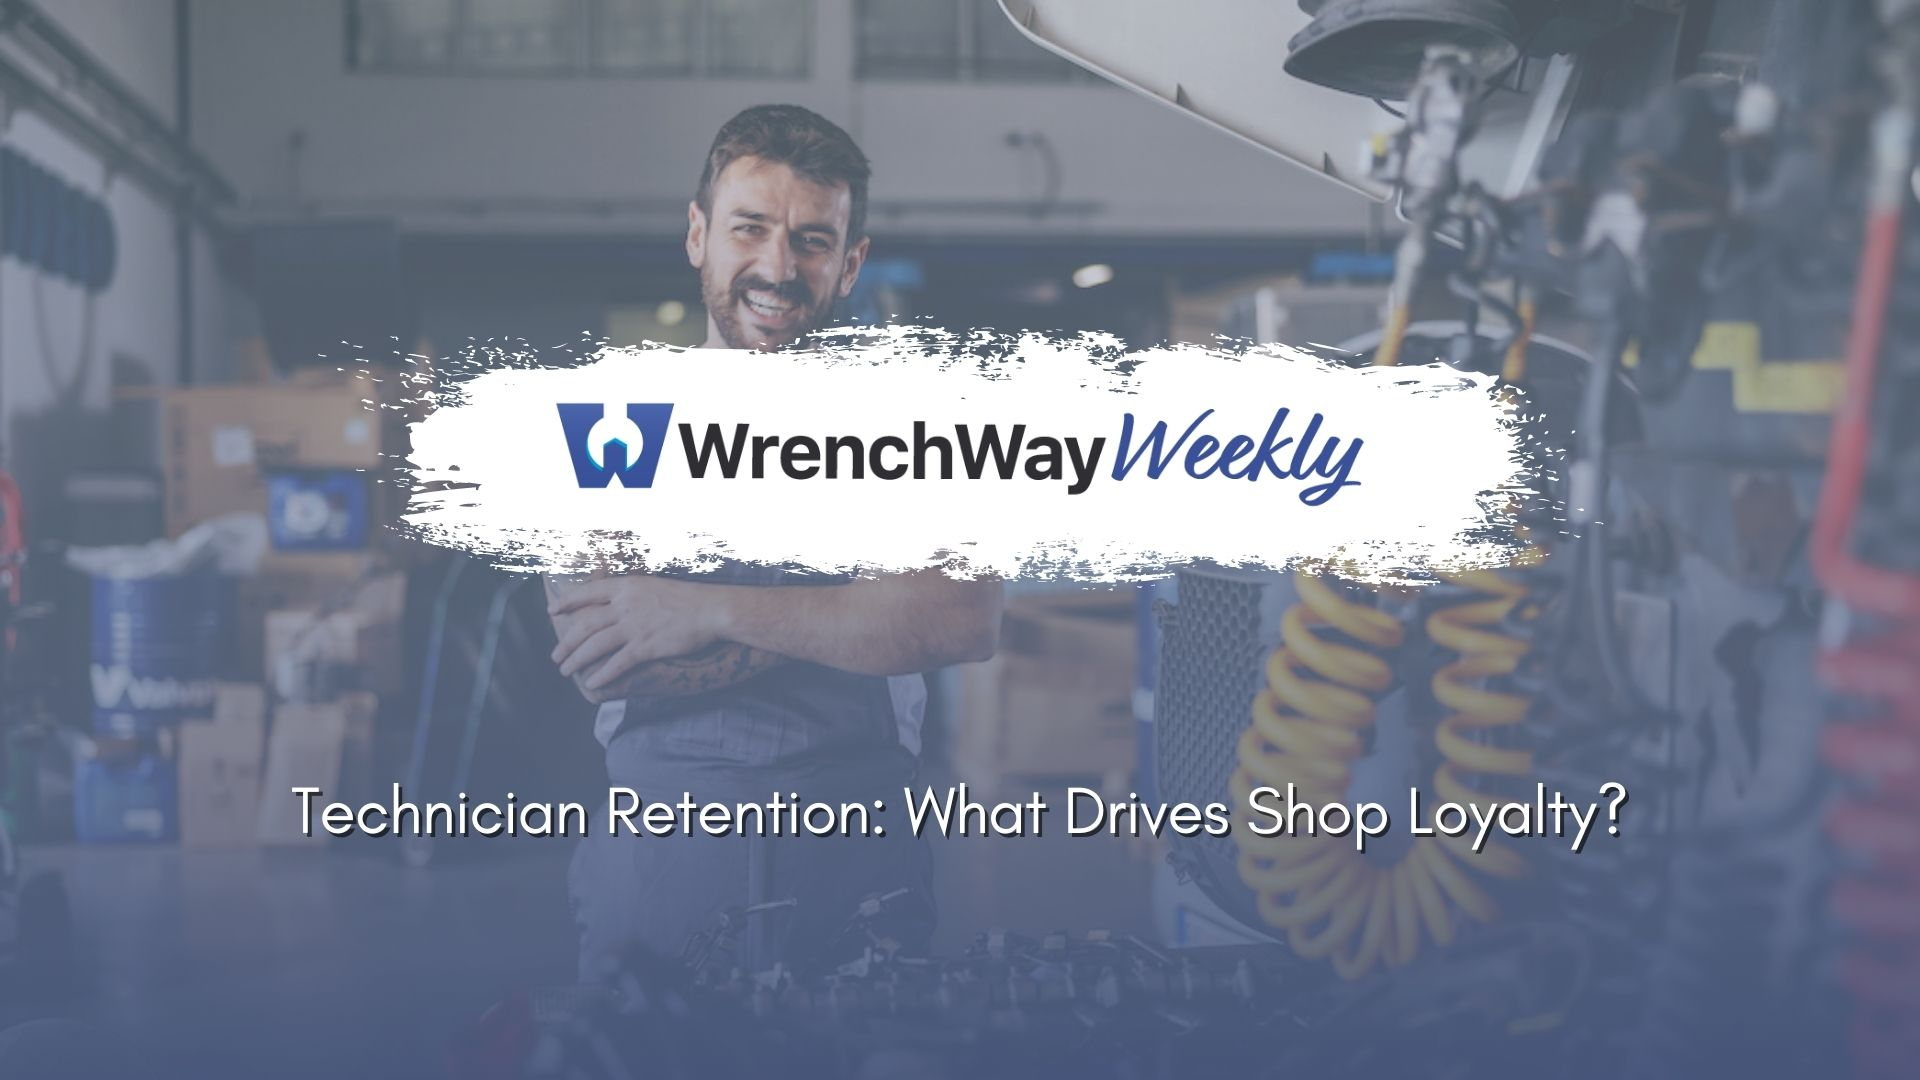 wrenchway weekly episode technician retention